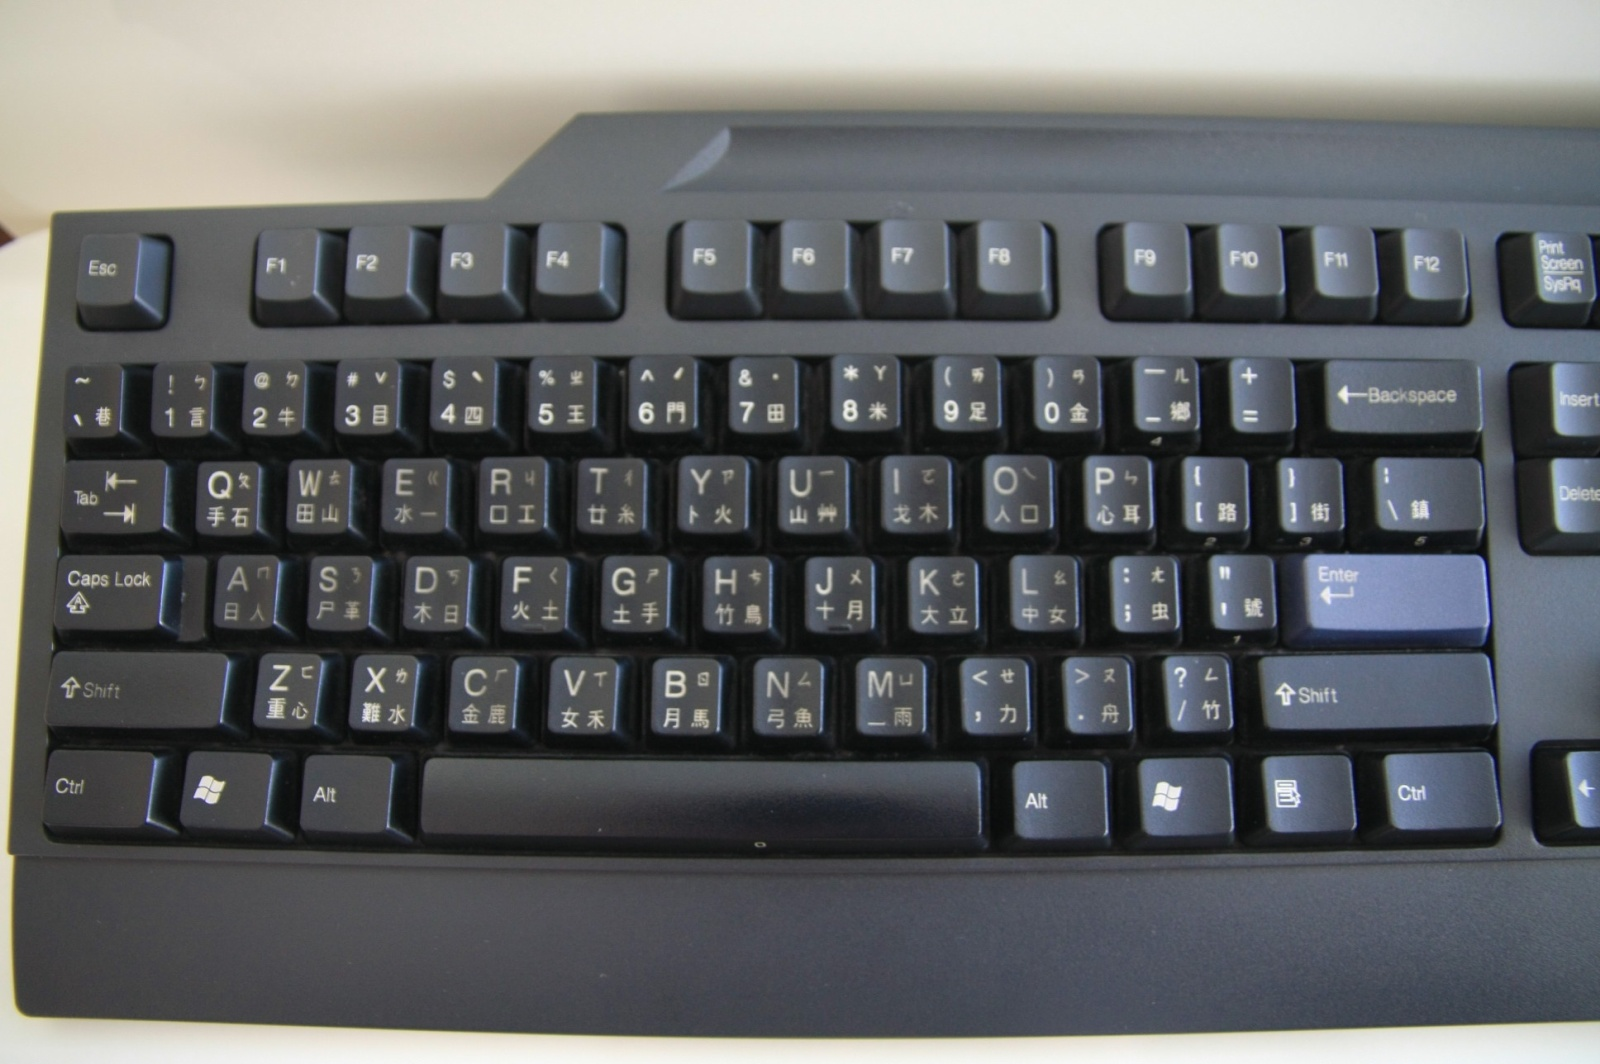 Chinese phonetic keyboard - couldn't resist taking a picture :-)